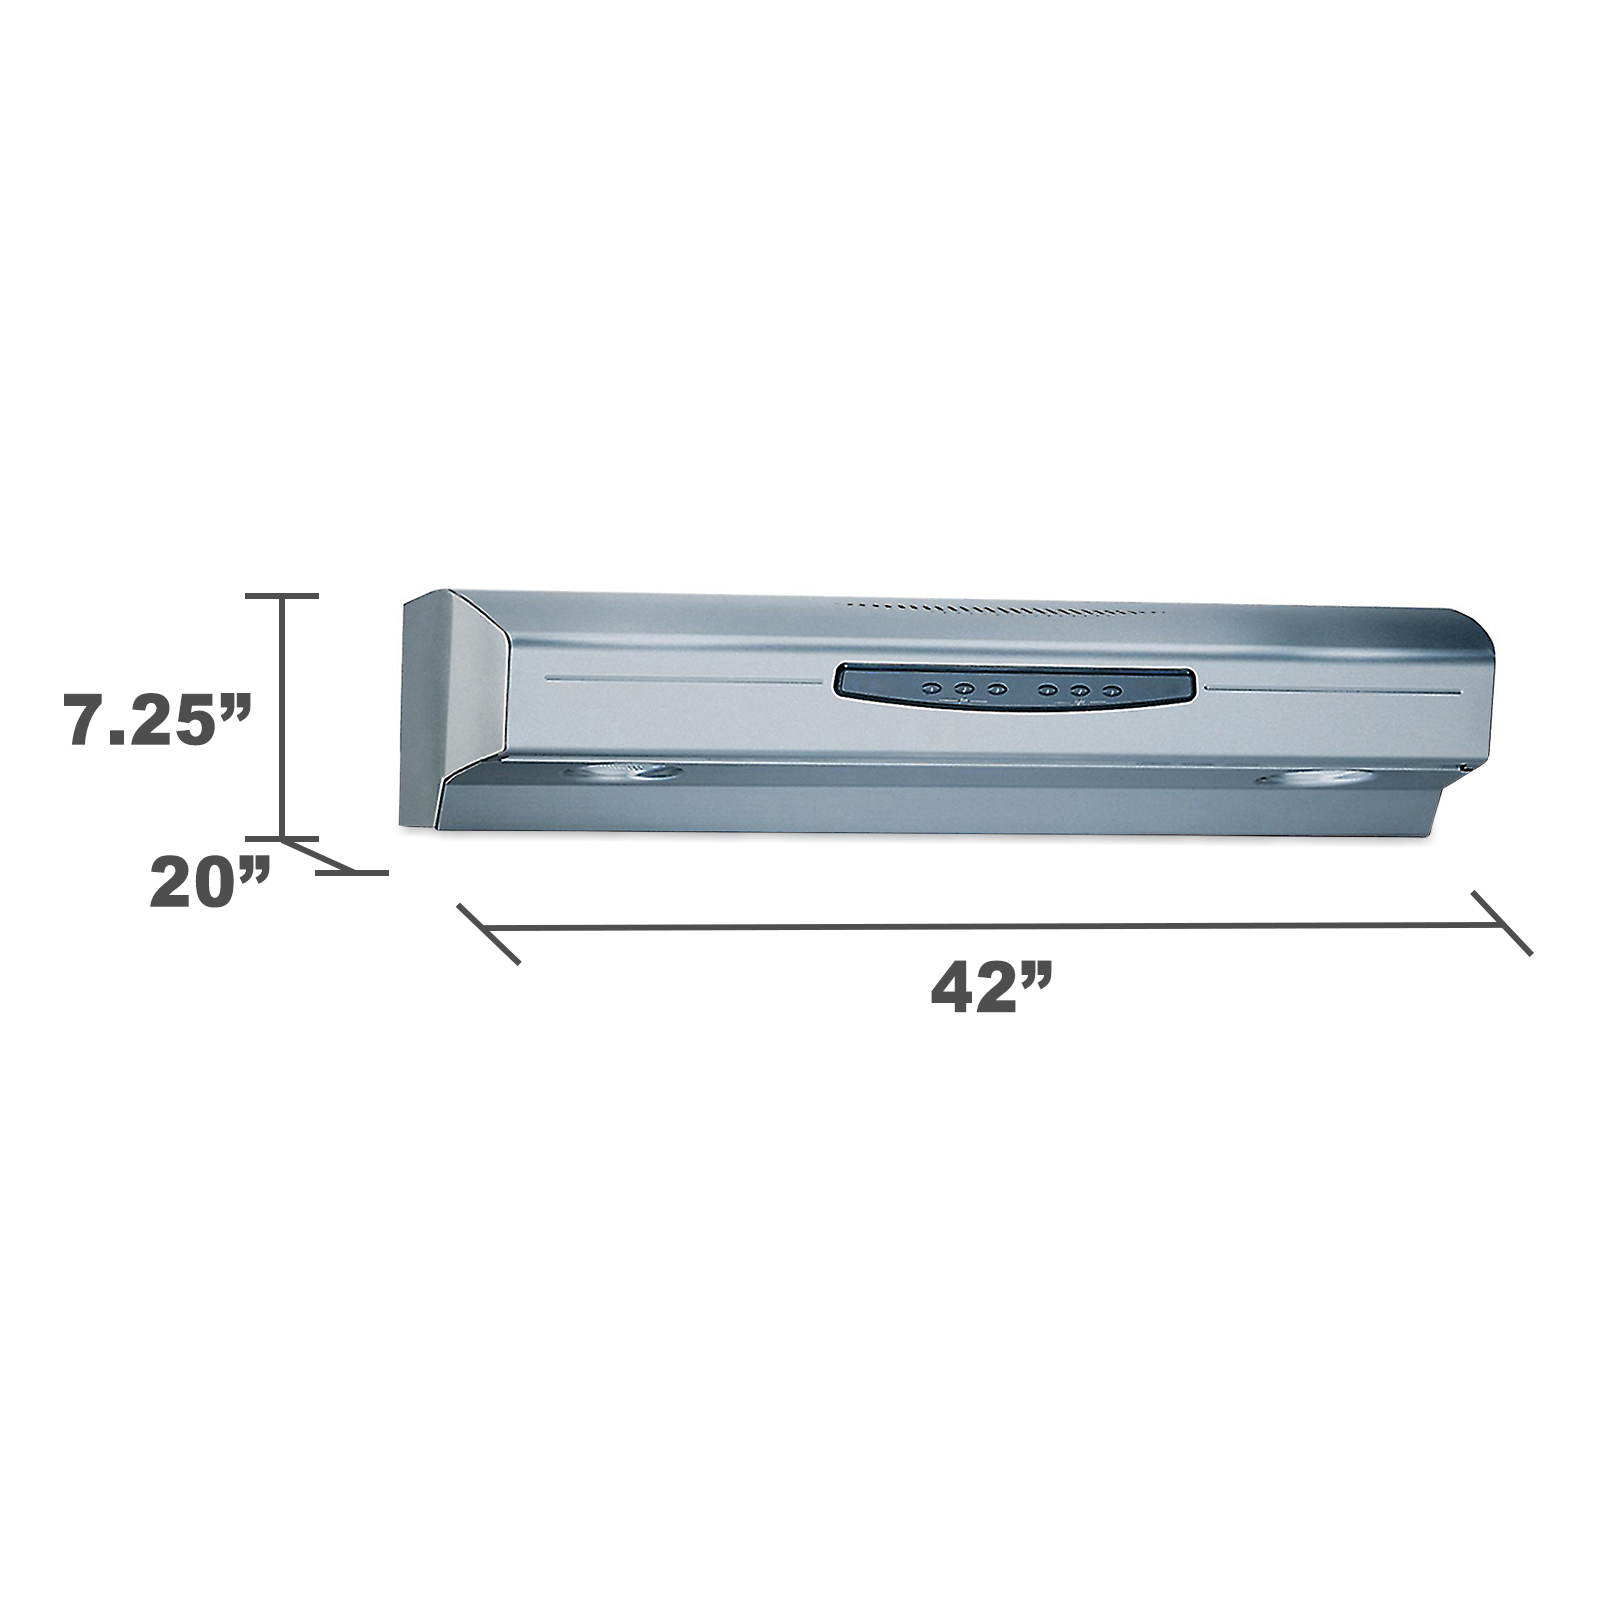 "Kenmore Elite 55223 42"" Updraft Range Hood w/ 3-Setting Halogen Lighting - Stainless Steel"